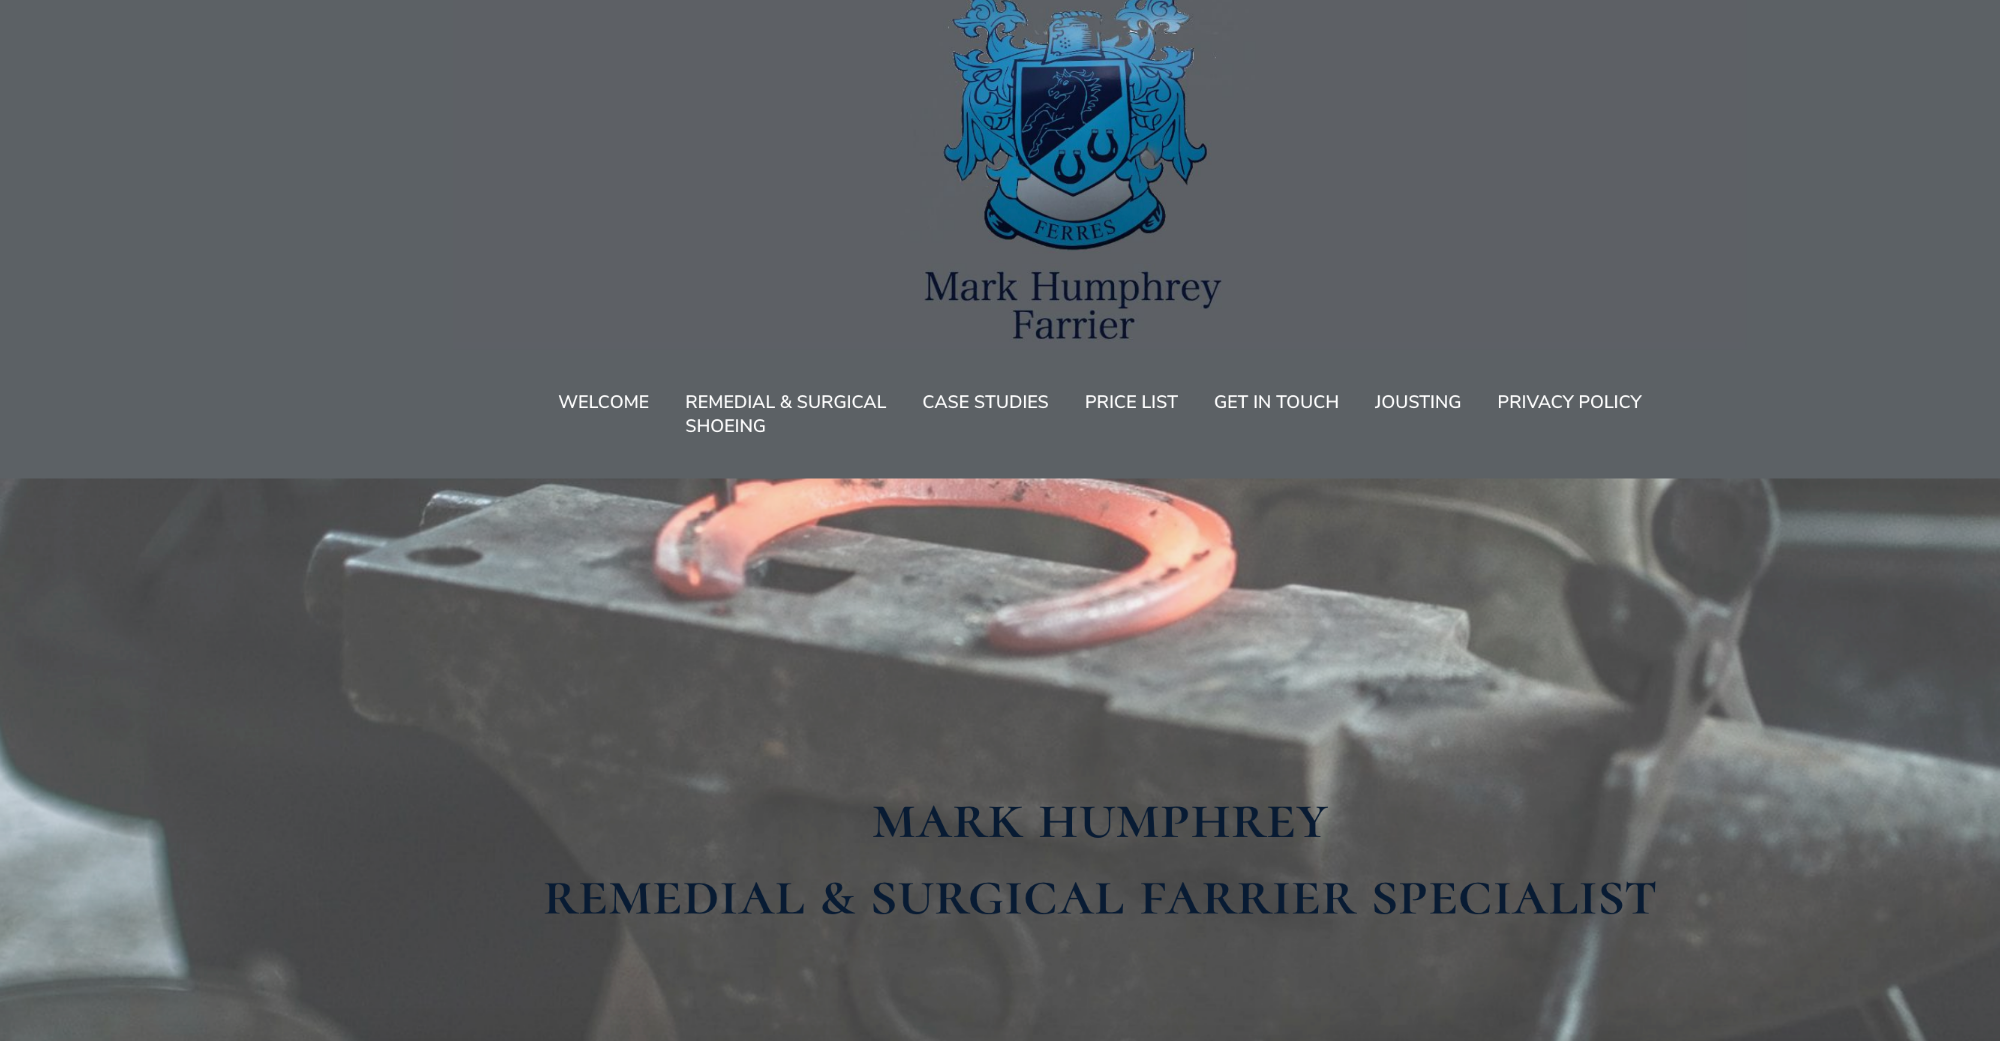 Mark Humphrey Farrier